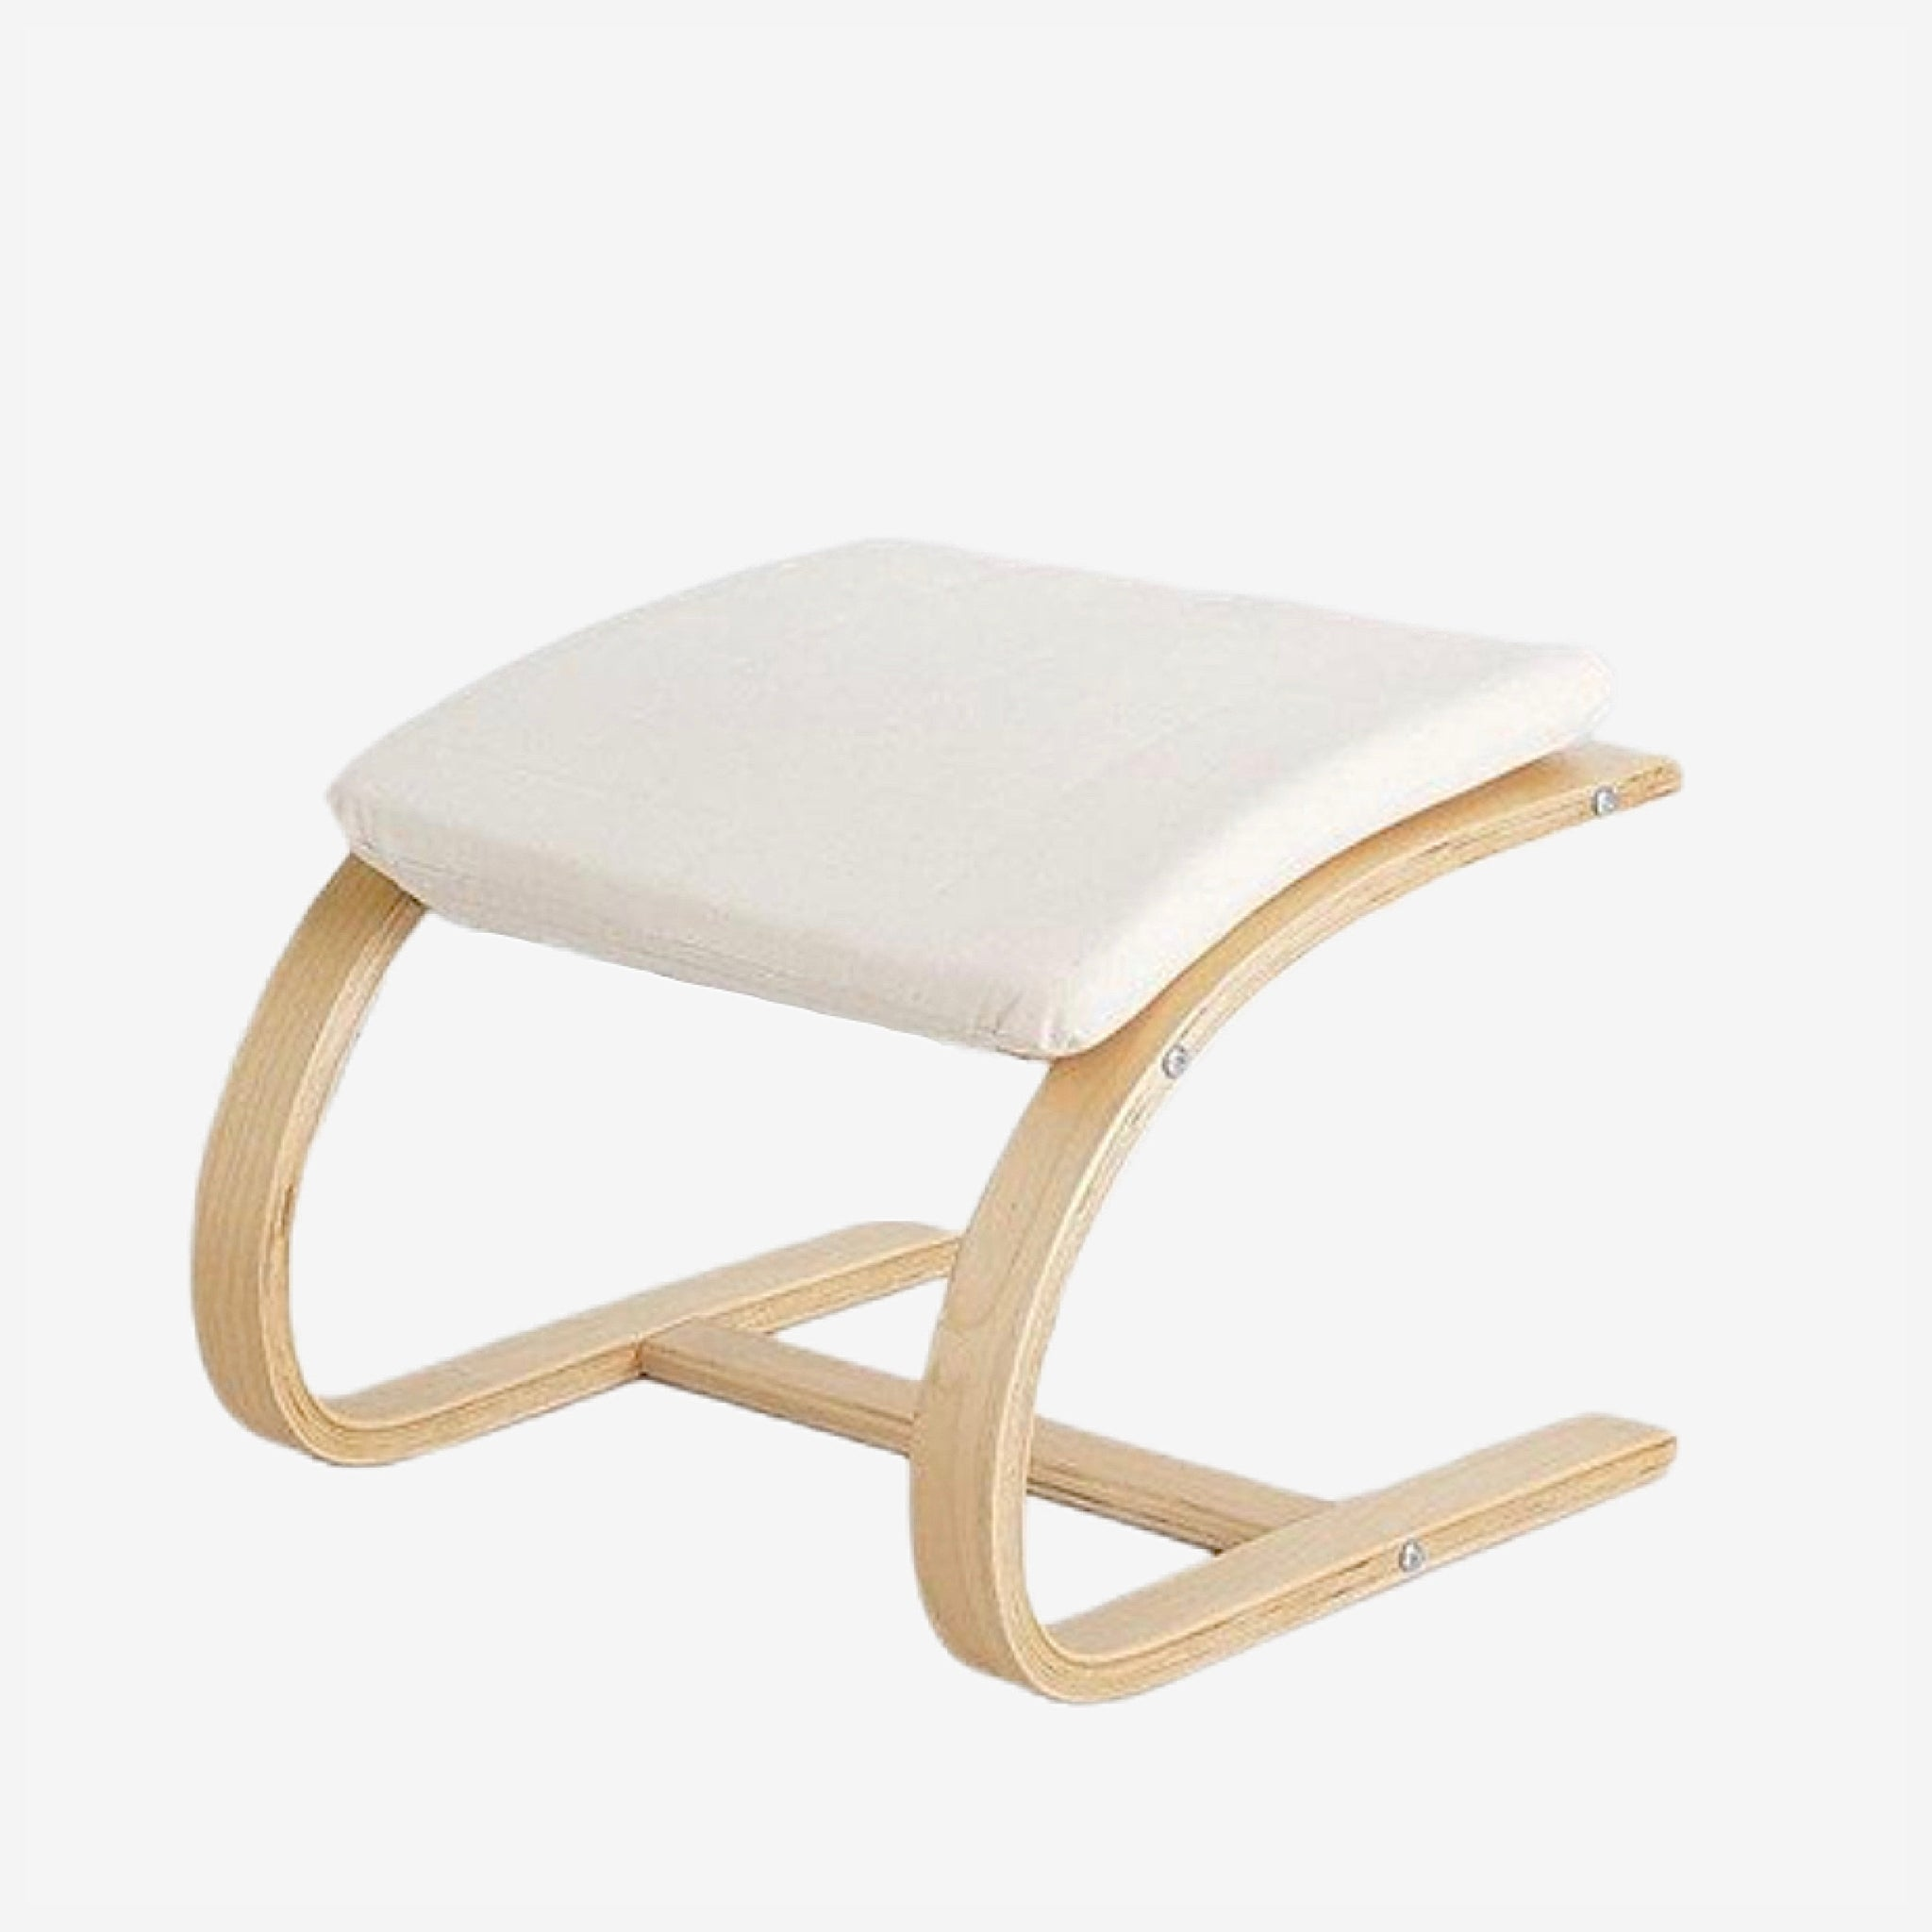 Contemporary Wooden Footstool Comfortable Beige Fabric Cushion Ottoman Chair Small Plywood Wood Footrest Stools Furniture